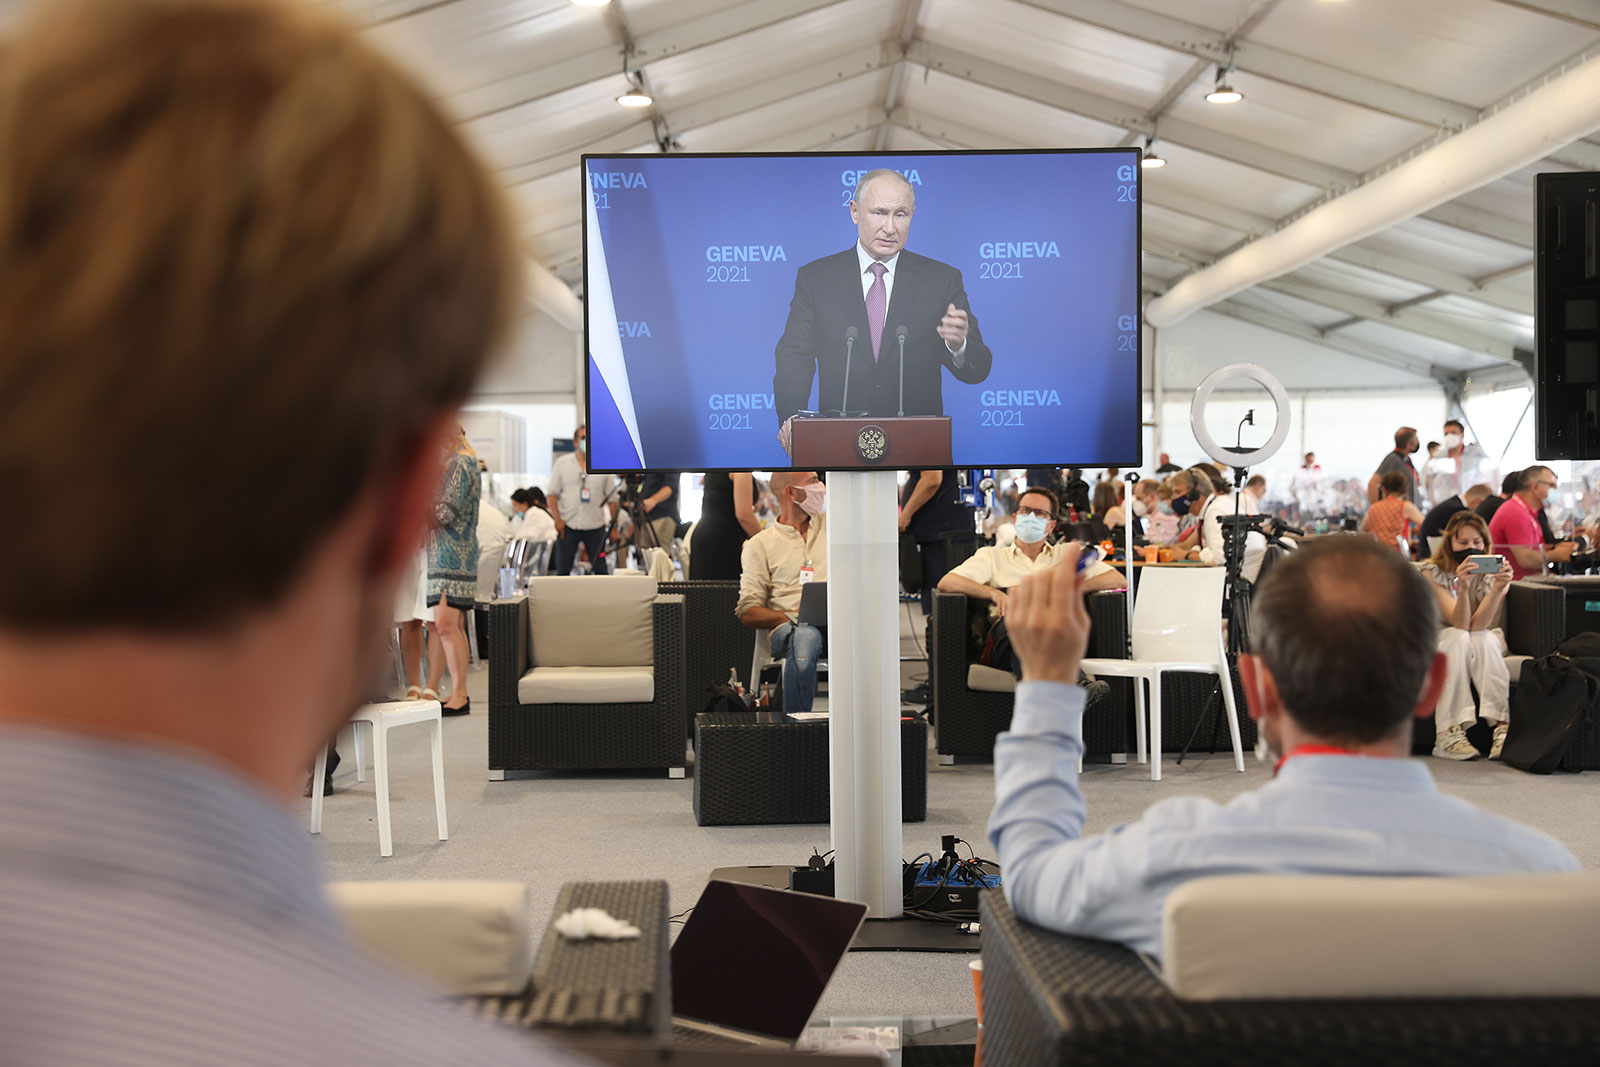 Journalists watch Russian President Vladimir Putin speak during a press conference from a media center in Geneva.